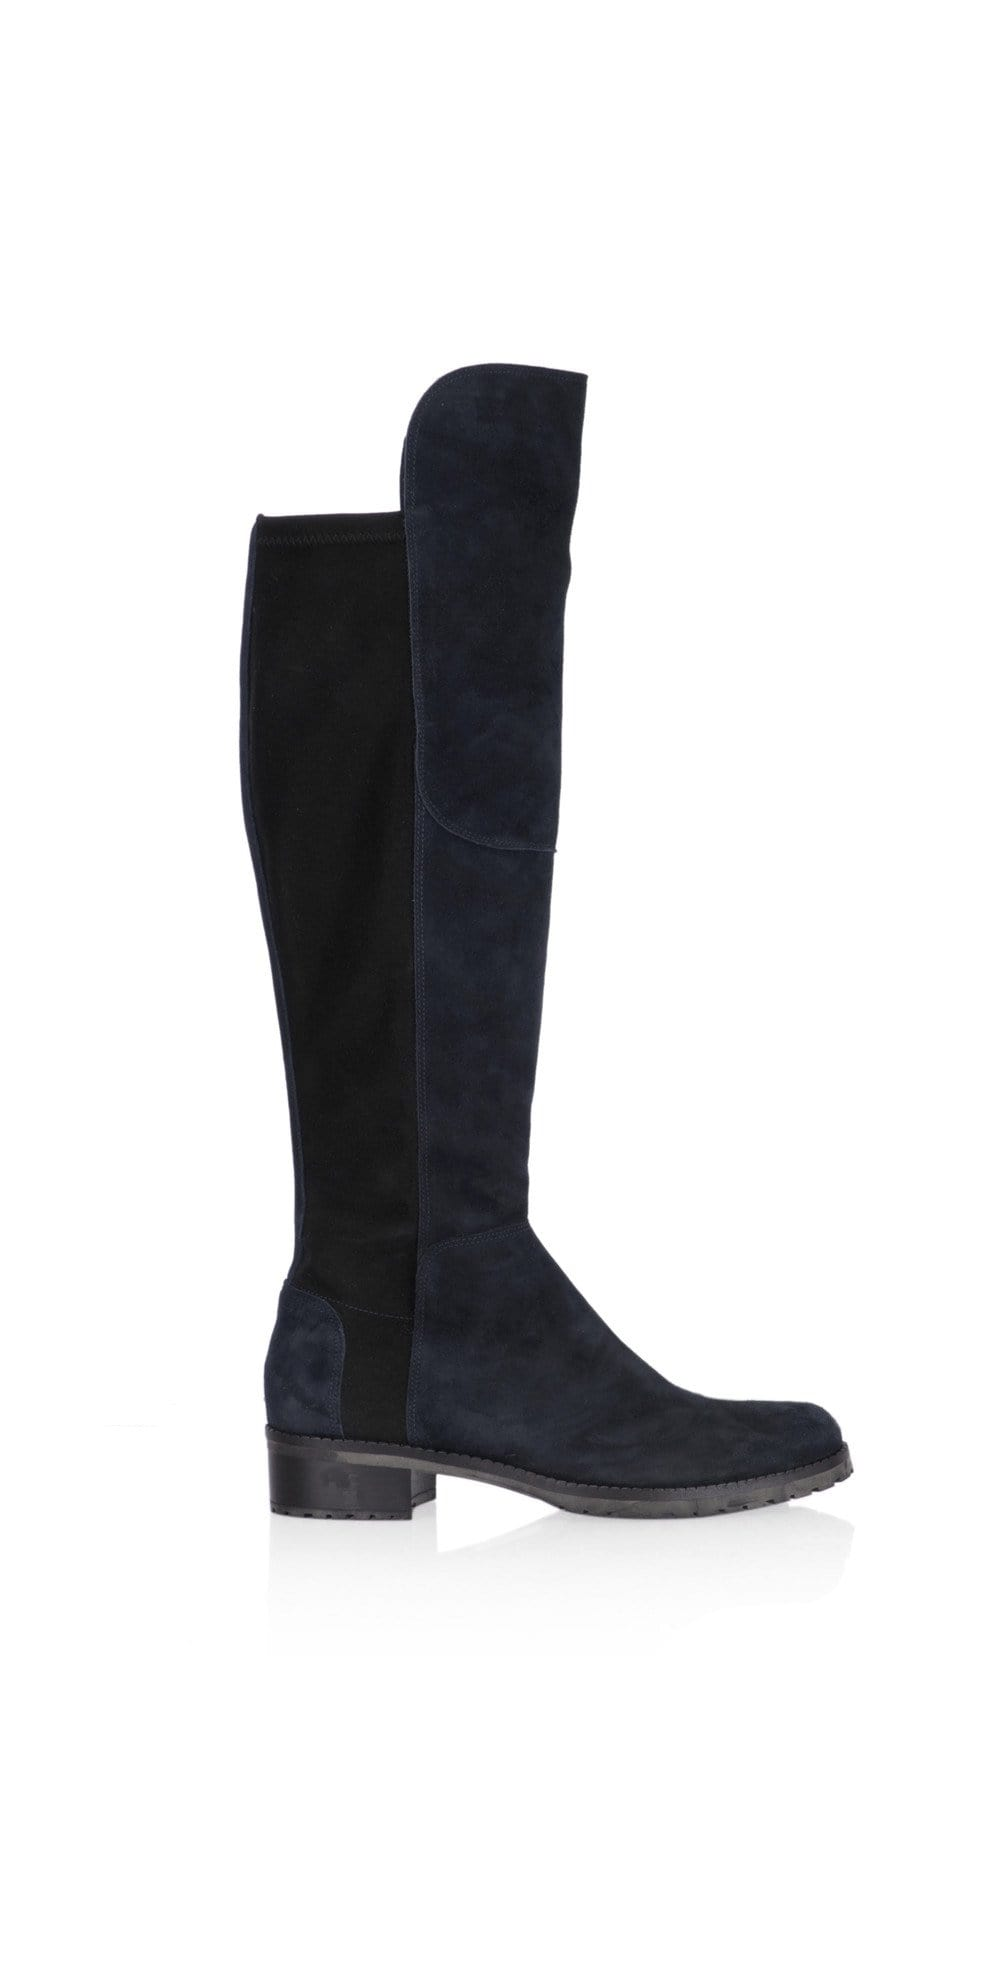 Kennel & Schmenger Shoes Kennel & Schmenger Blues Long Flat Boots in Navy Suede 41-24160-485 izzi-of-baslow